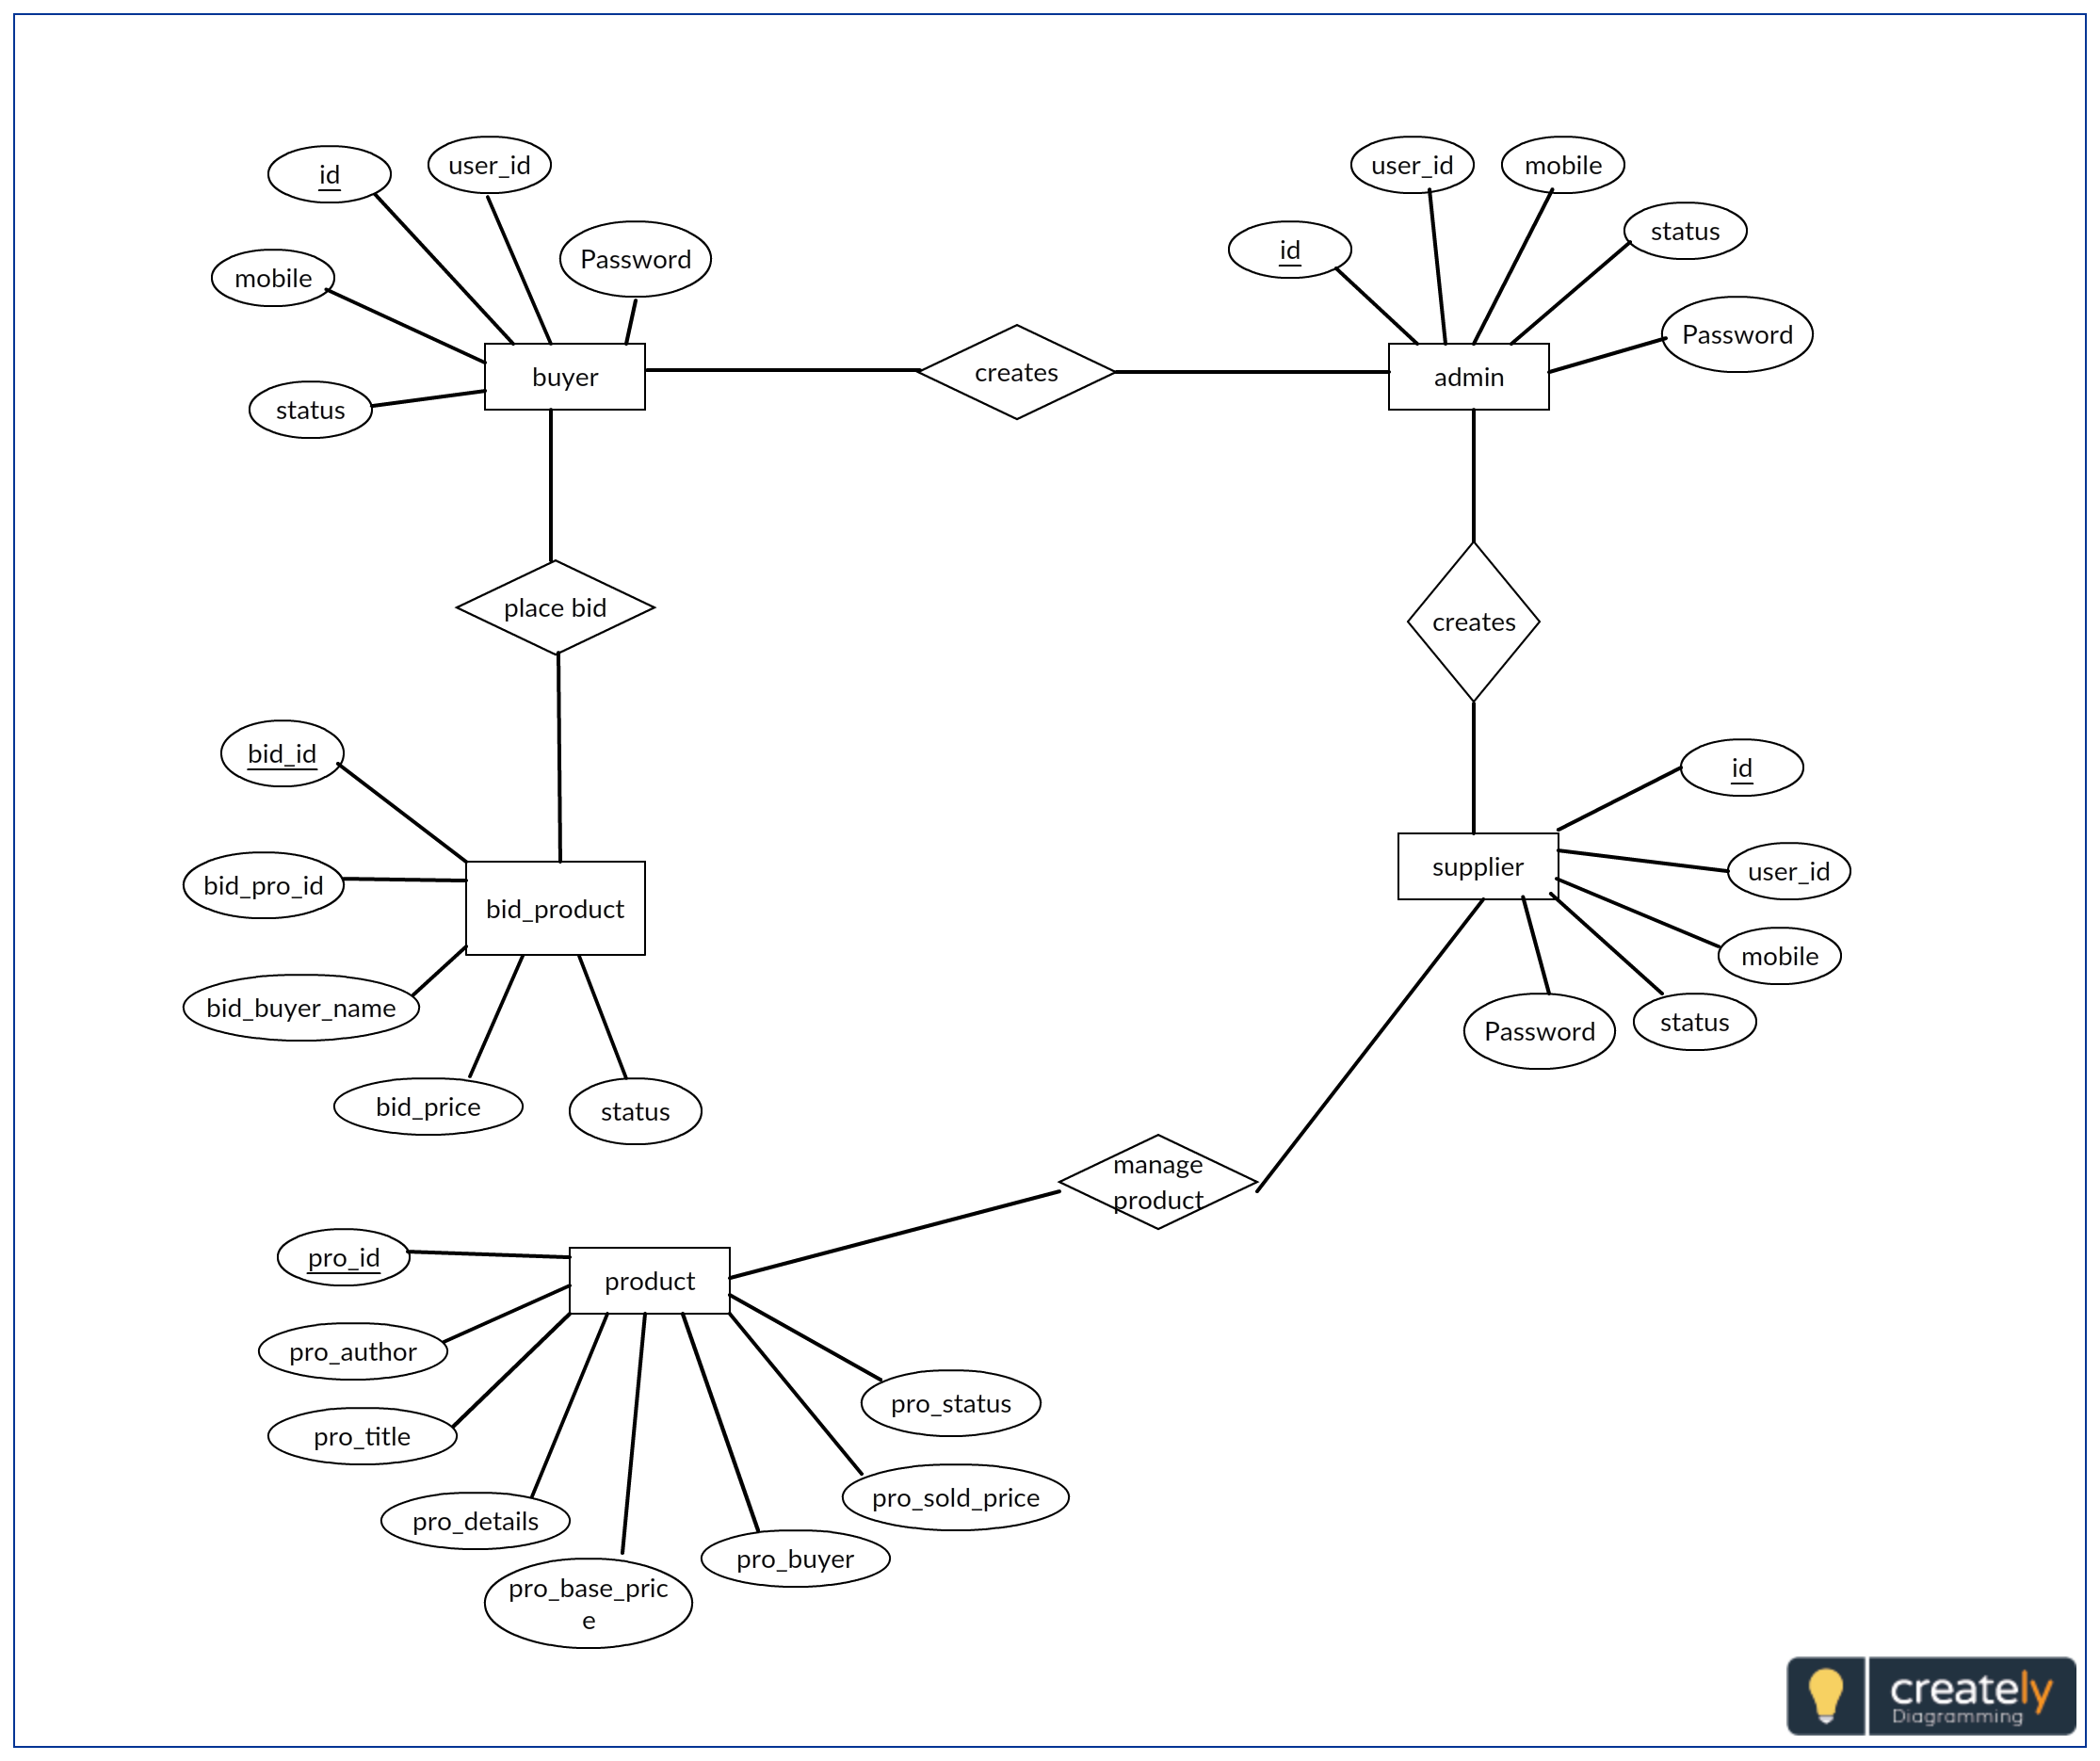 medium resolution of entity relationship diagram example for auctioning system click on the image to edit online and